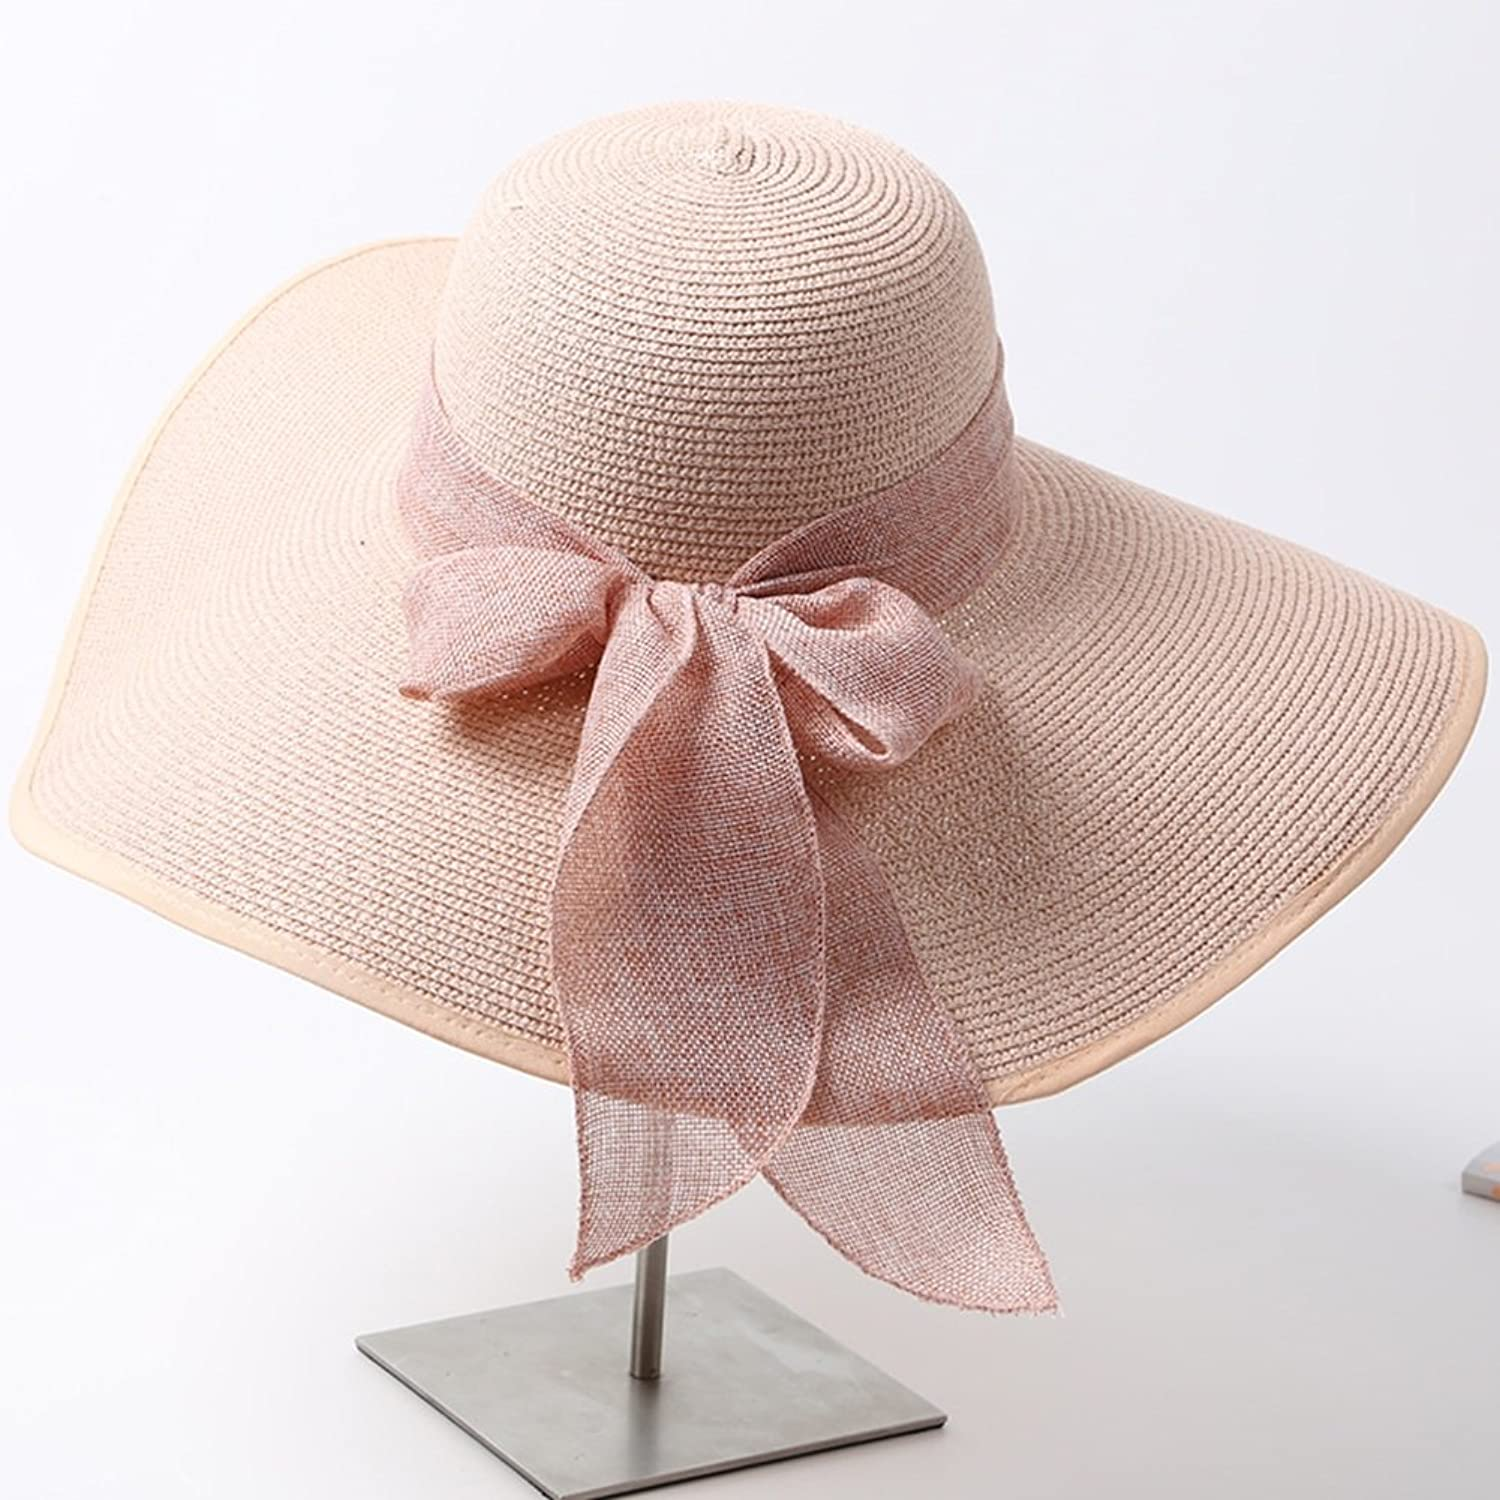 40094cadc76dab YD Summer Hat, Women Sun Hat Wide Brim Sunscreen Straw Cap Knitting Floppy  Foldable Packable Summer, 17 colors Optional (color 15 ) Hand Hat ...